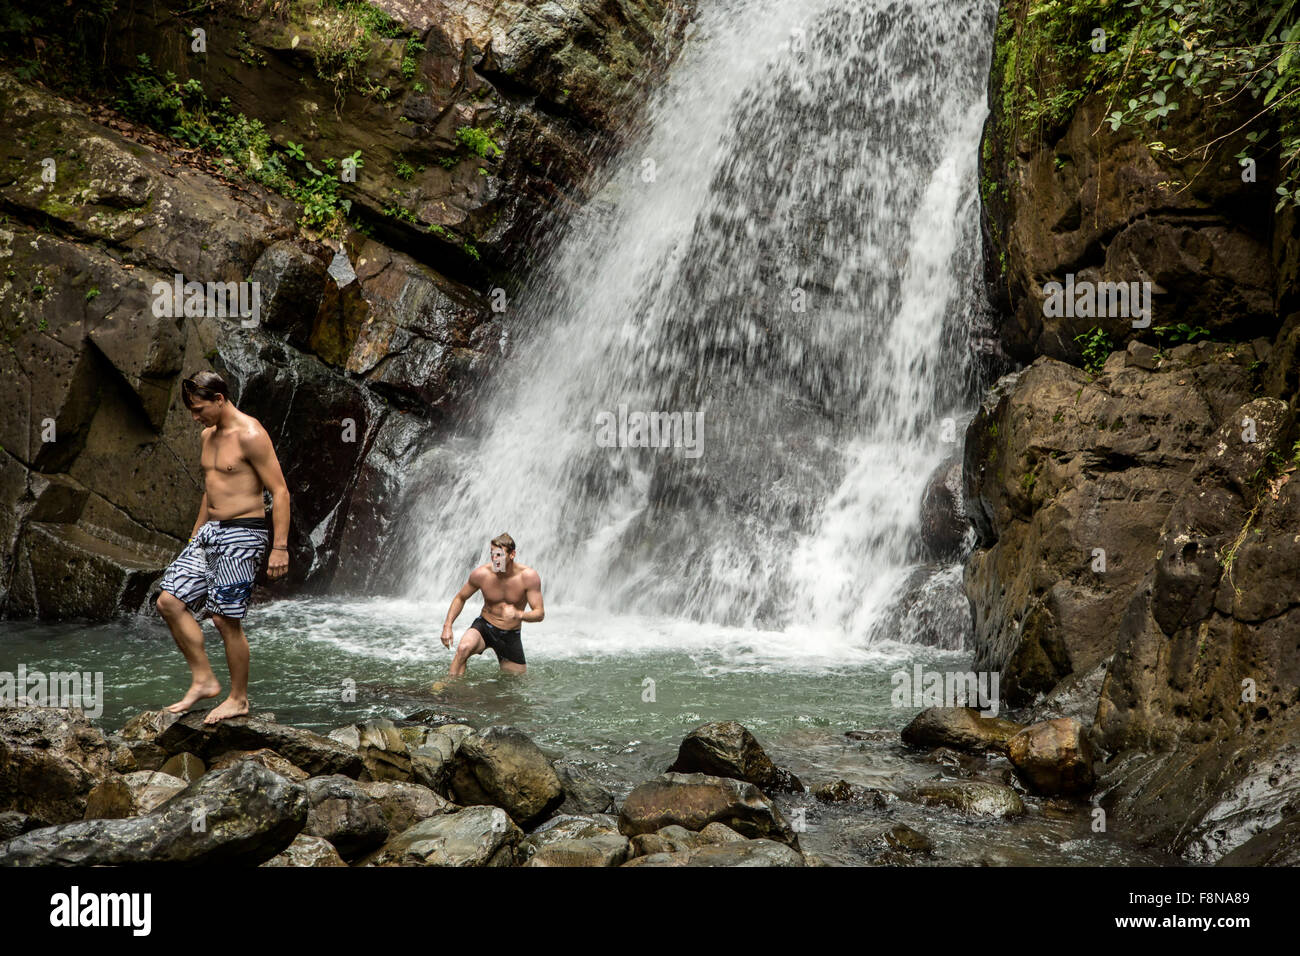 Swimmers at La Mina Falls, Caribbean National Forest (El Yunque Rain Forest), Puerto Rico - Stock Image